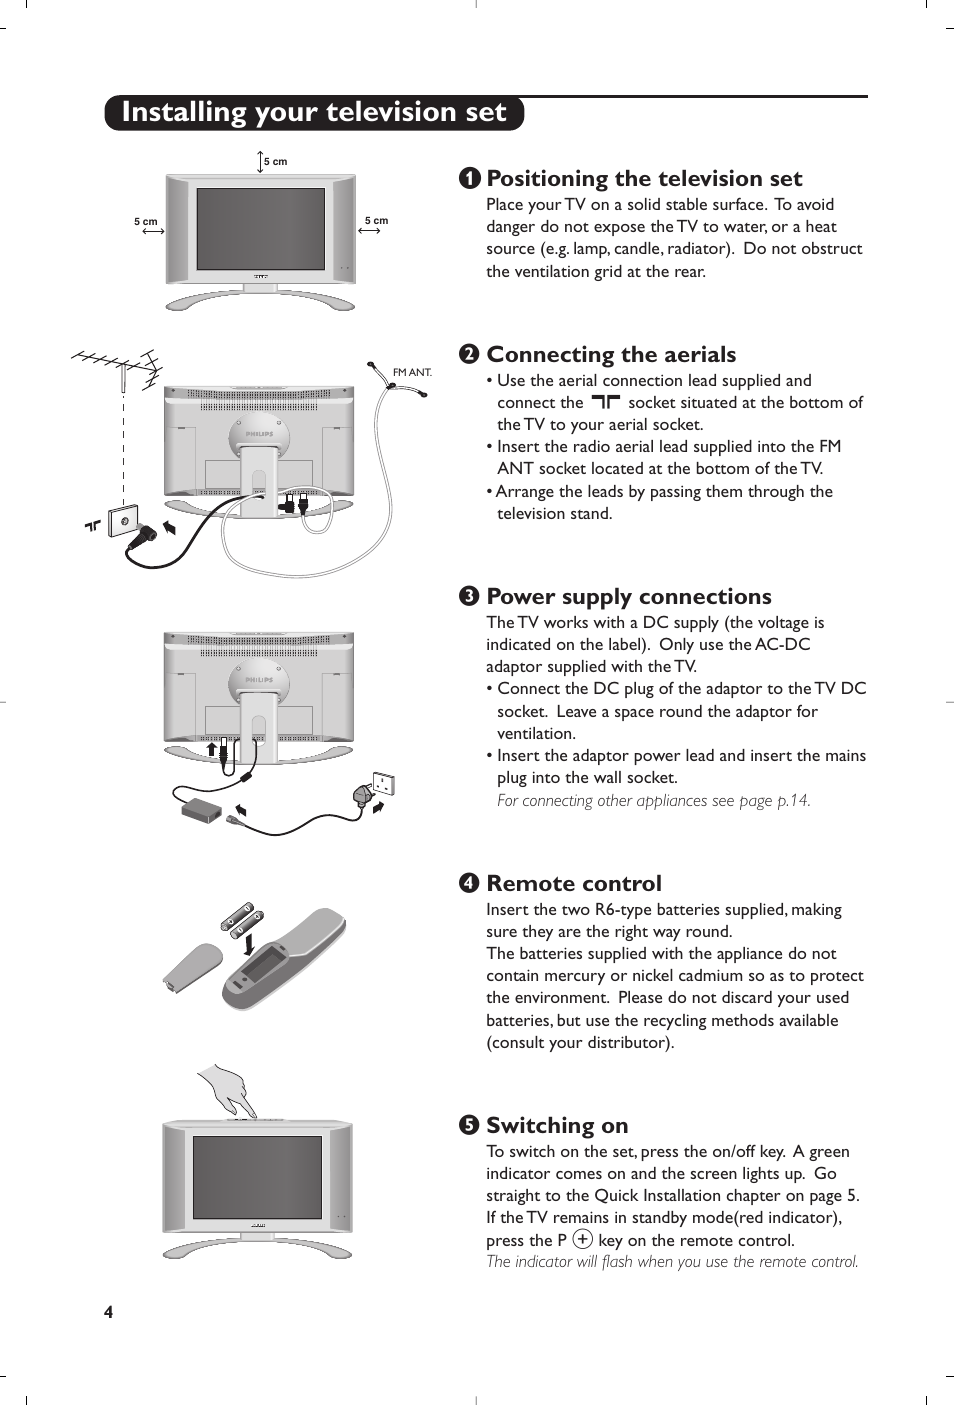 Installing your television set, Positioning the television set